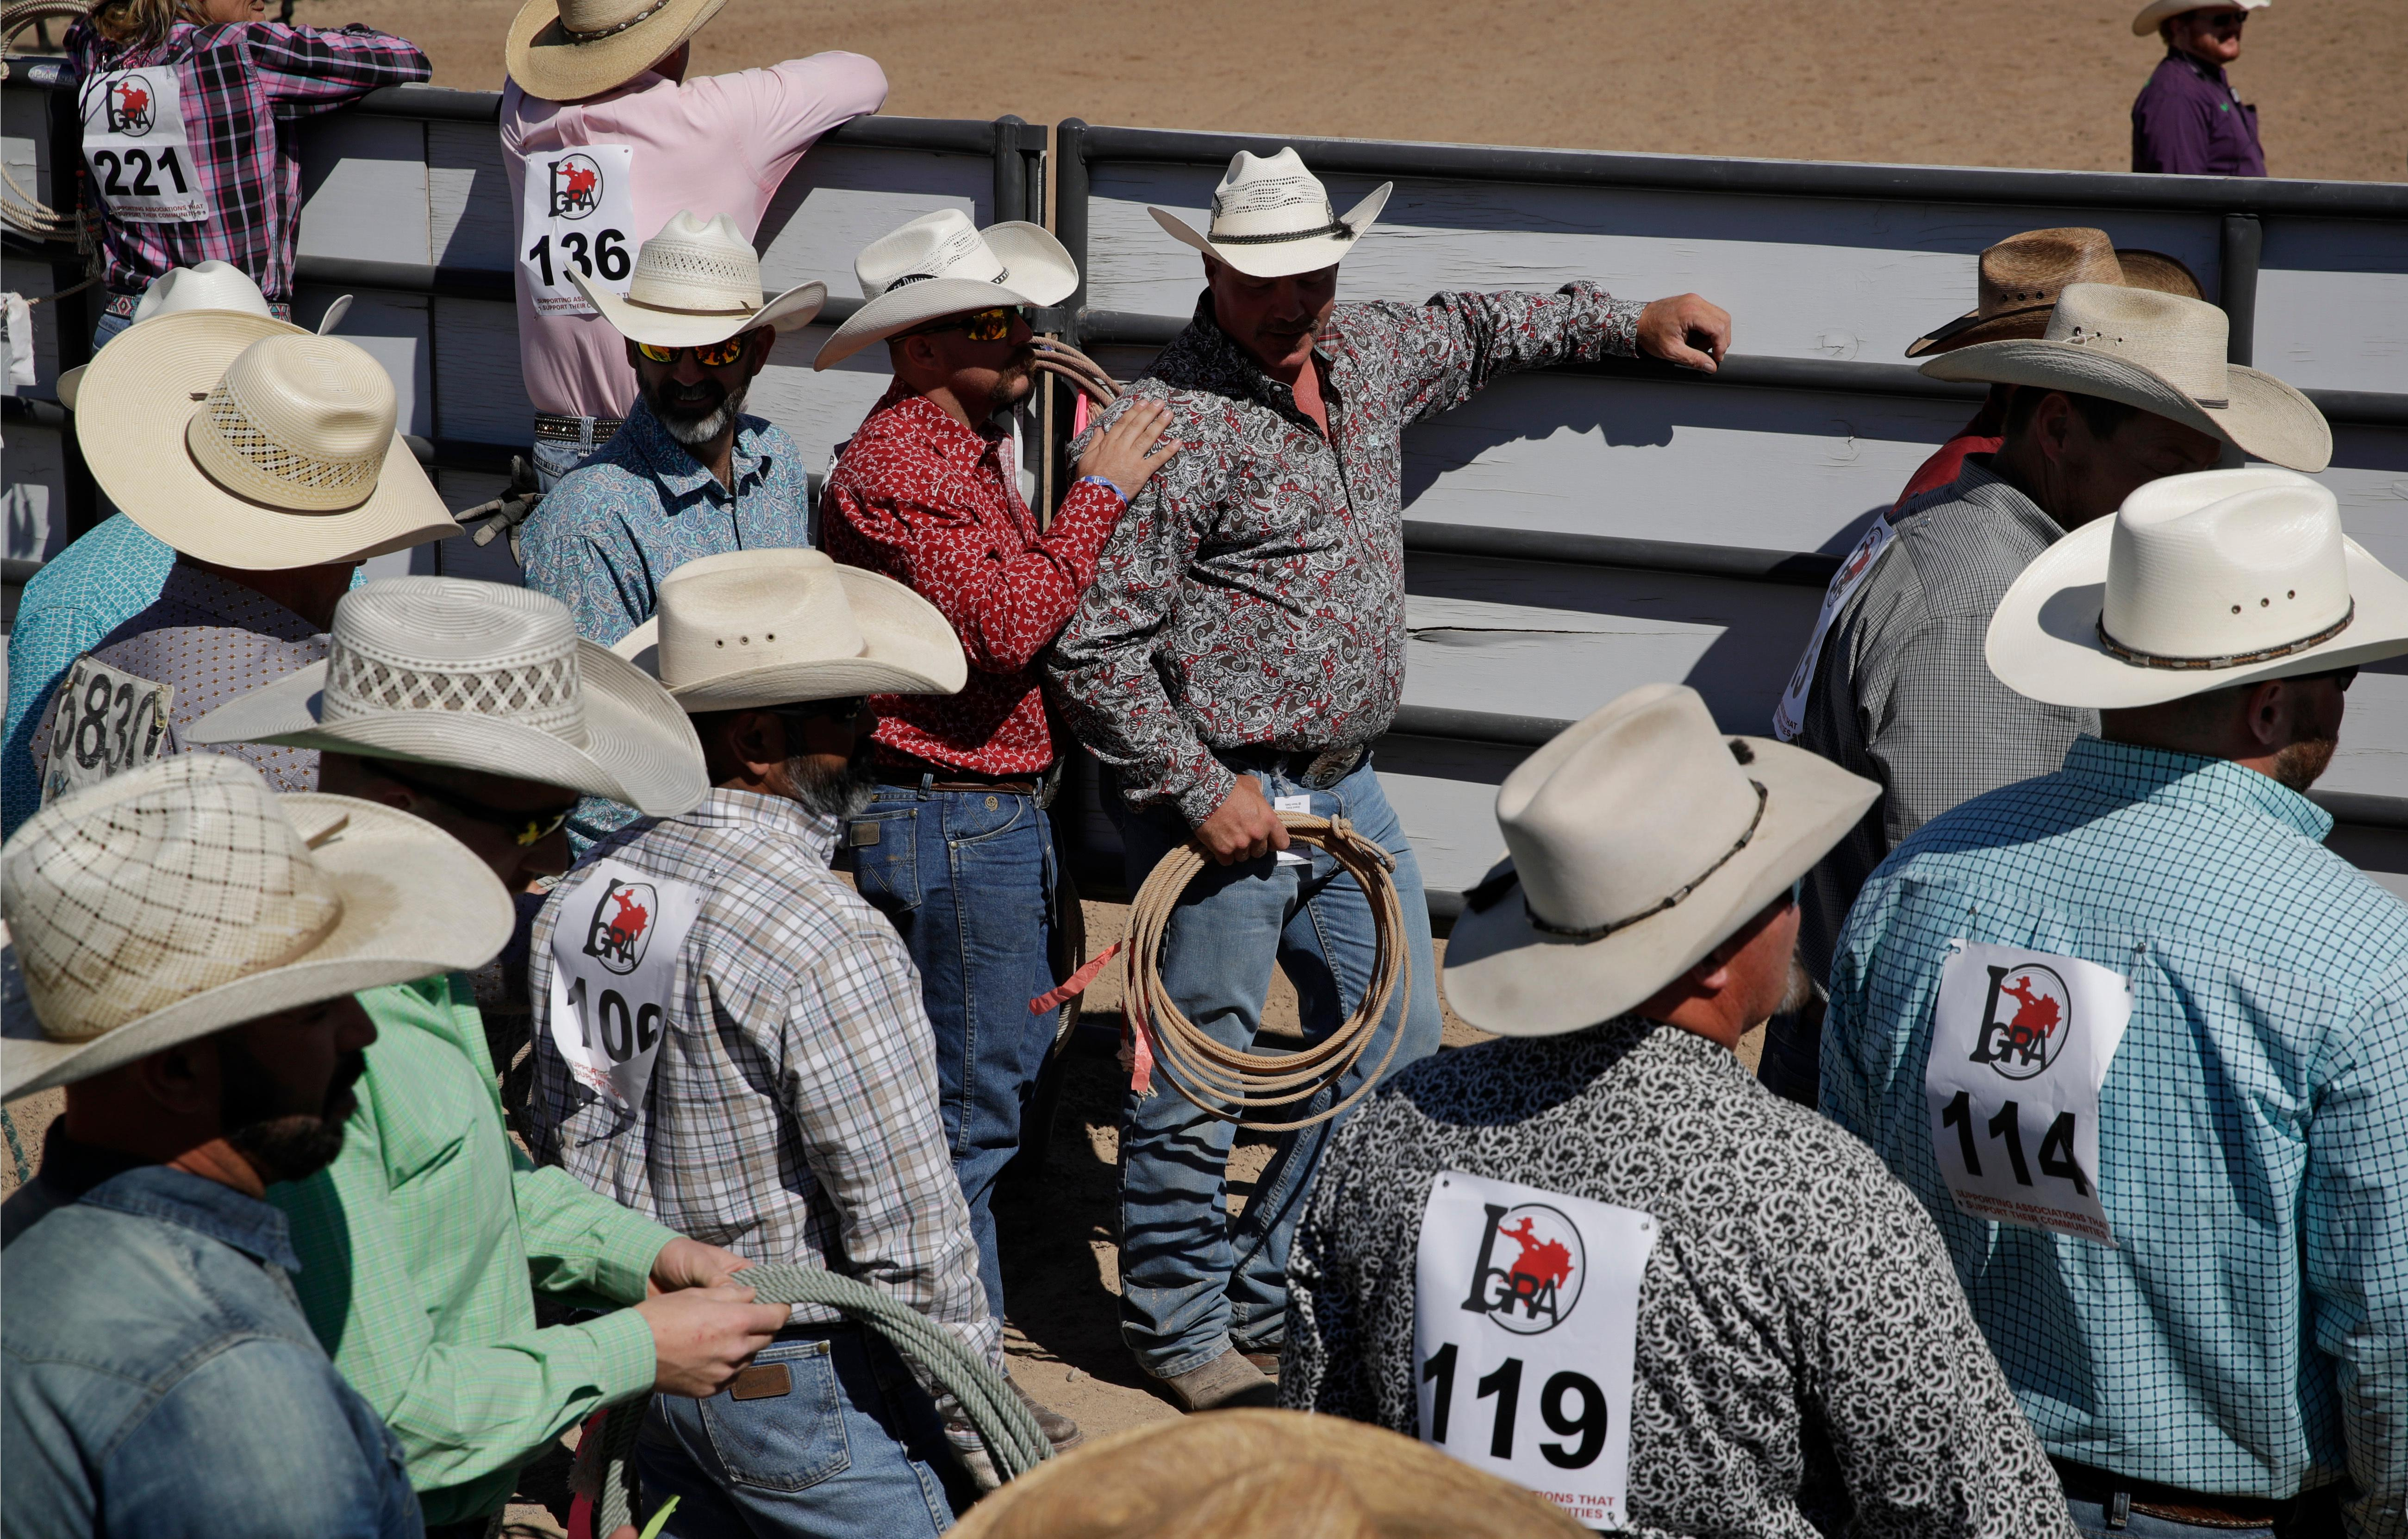 In this Sept. 24, 2017, photo, competitors wait to compete in the calf roping on foot event at the Bighorn Rodeo in Las Vegas. Circuit rodeos feature a variety of traditional events, including bull riding, bareback bronc riding, calf roping and barrel racing. (AP Photo/John Locher)